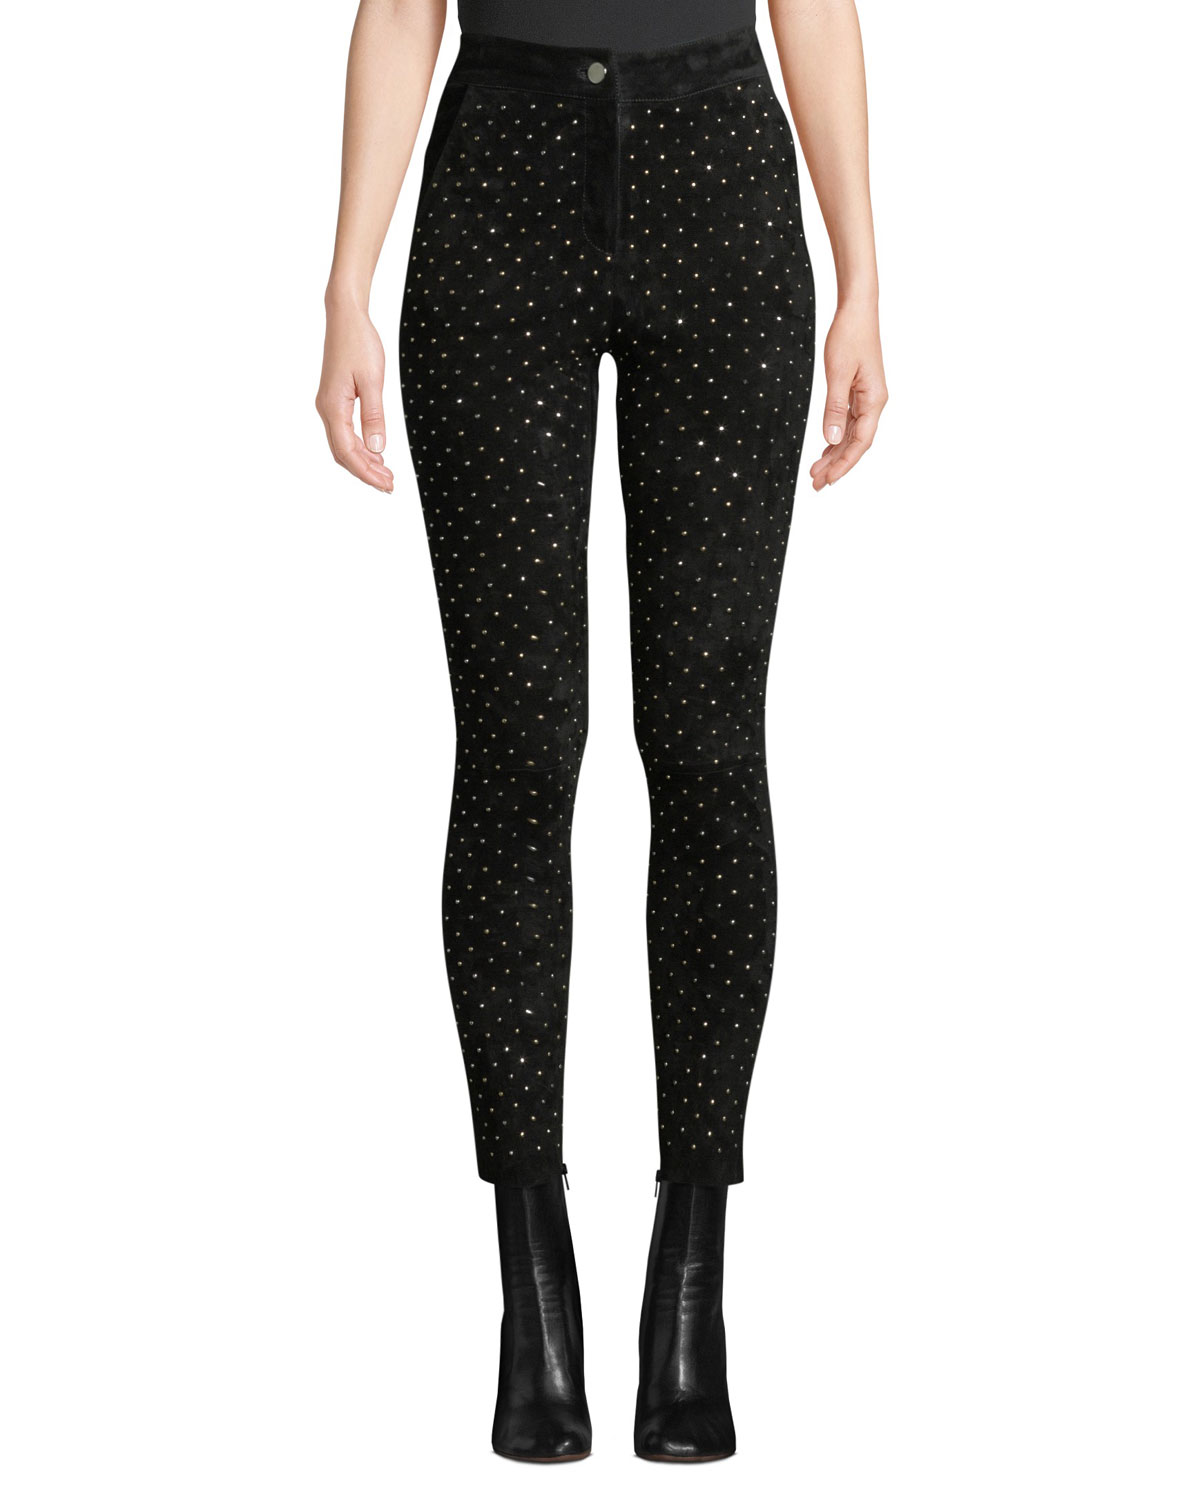 NOUR HAMMOUR High-Waist Studded Suede Skinny-Leg Jeans in Black Pattern